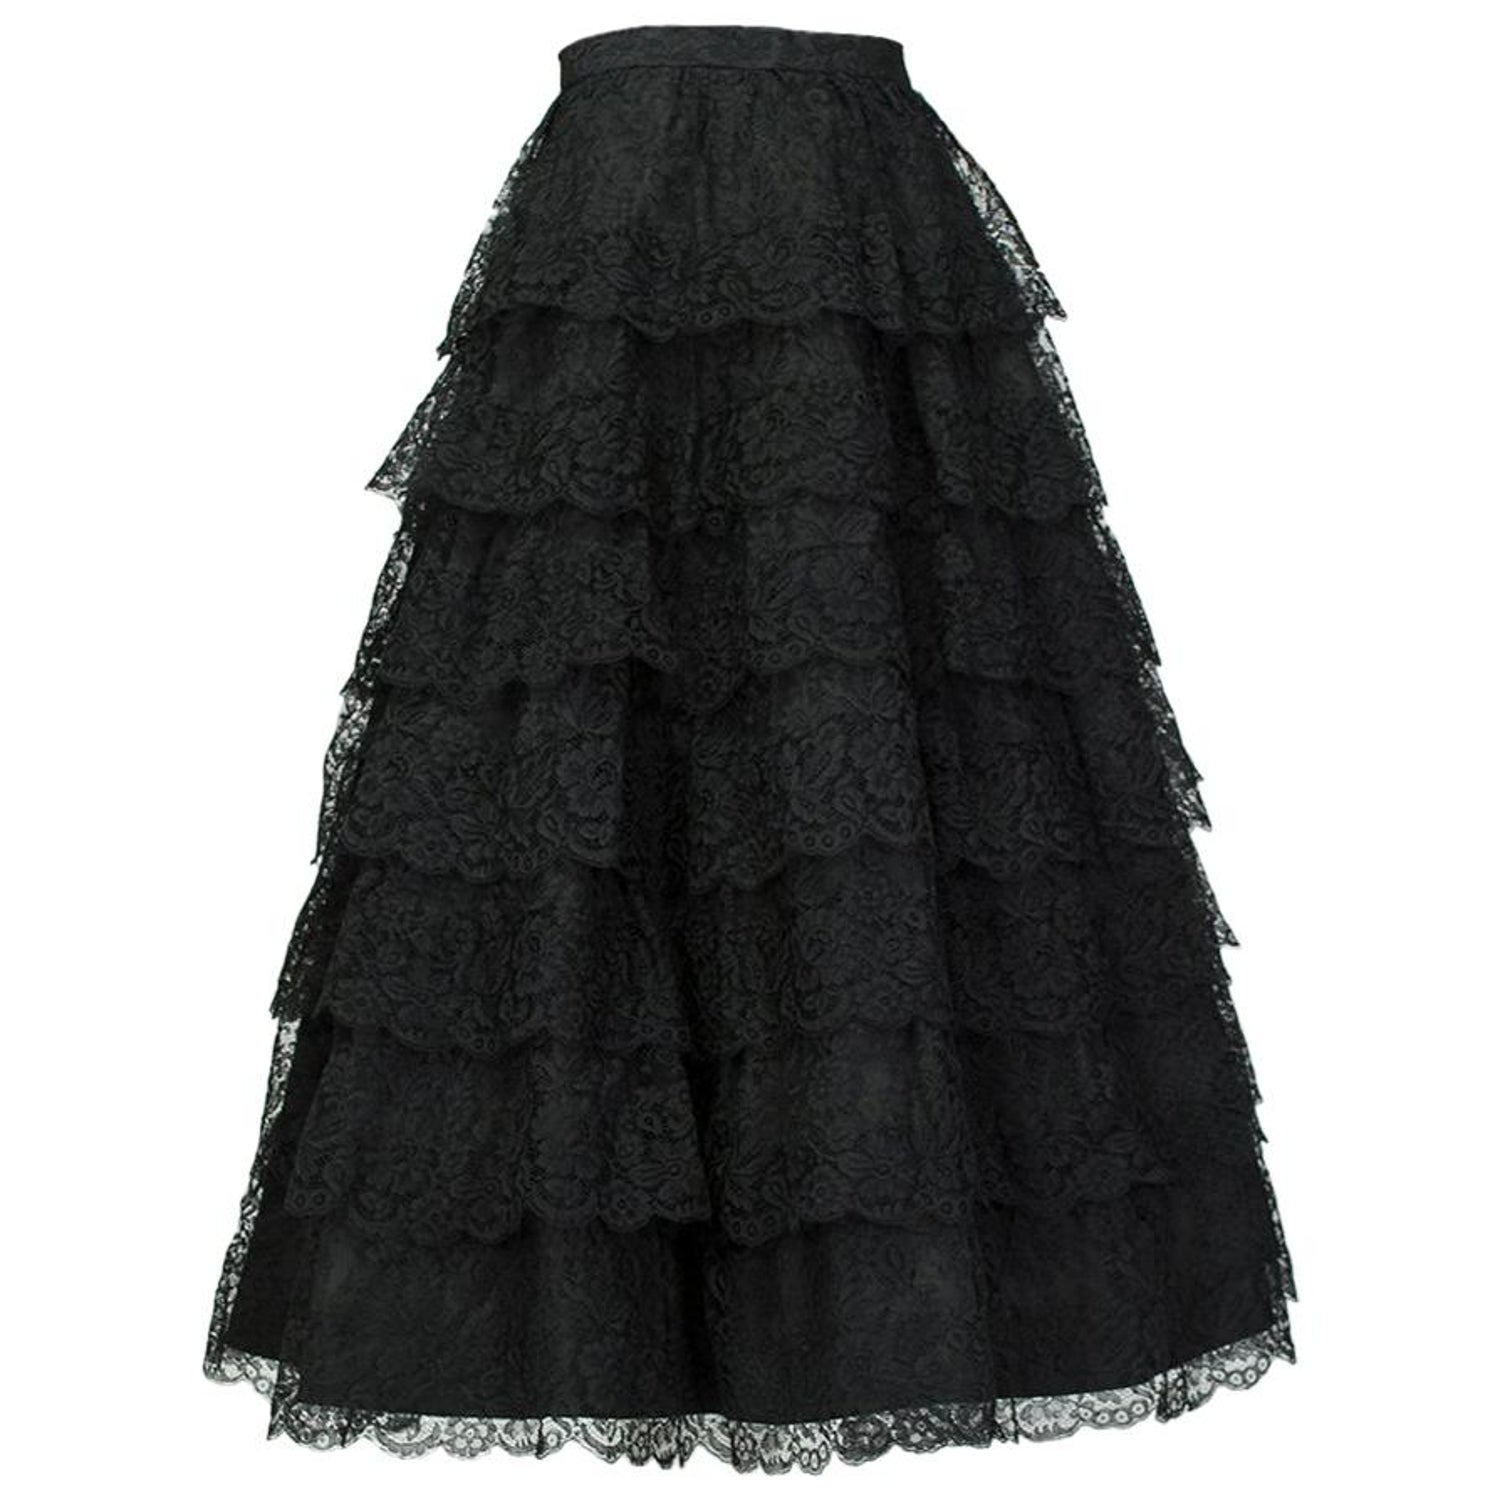 54f55233 Jo Copeland Black Tiered Lace Ballerina Skirt, 1950s For Sale at 1stdibs